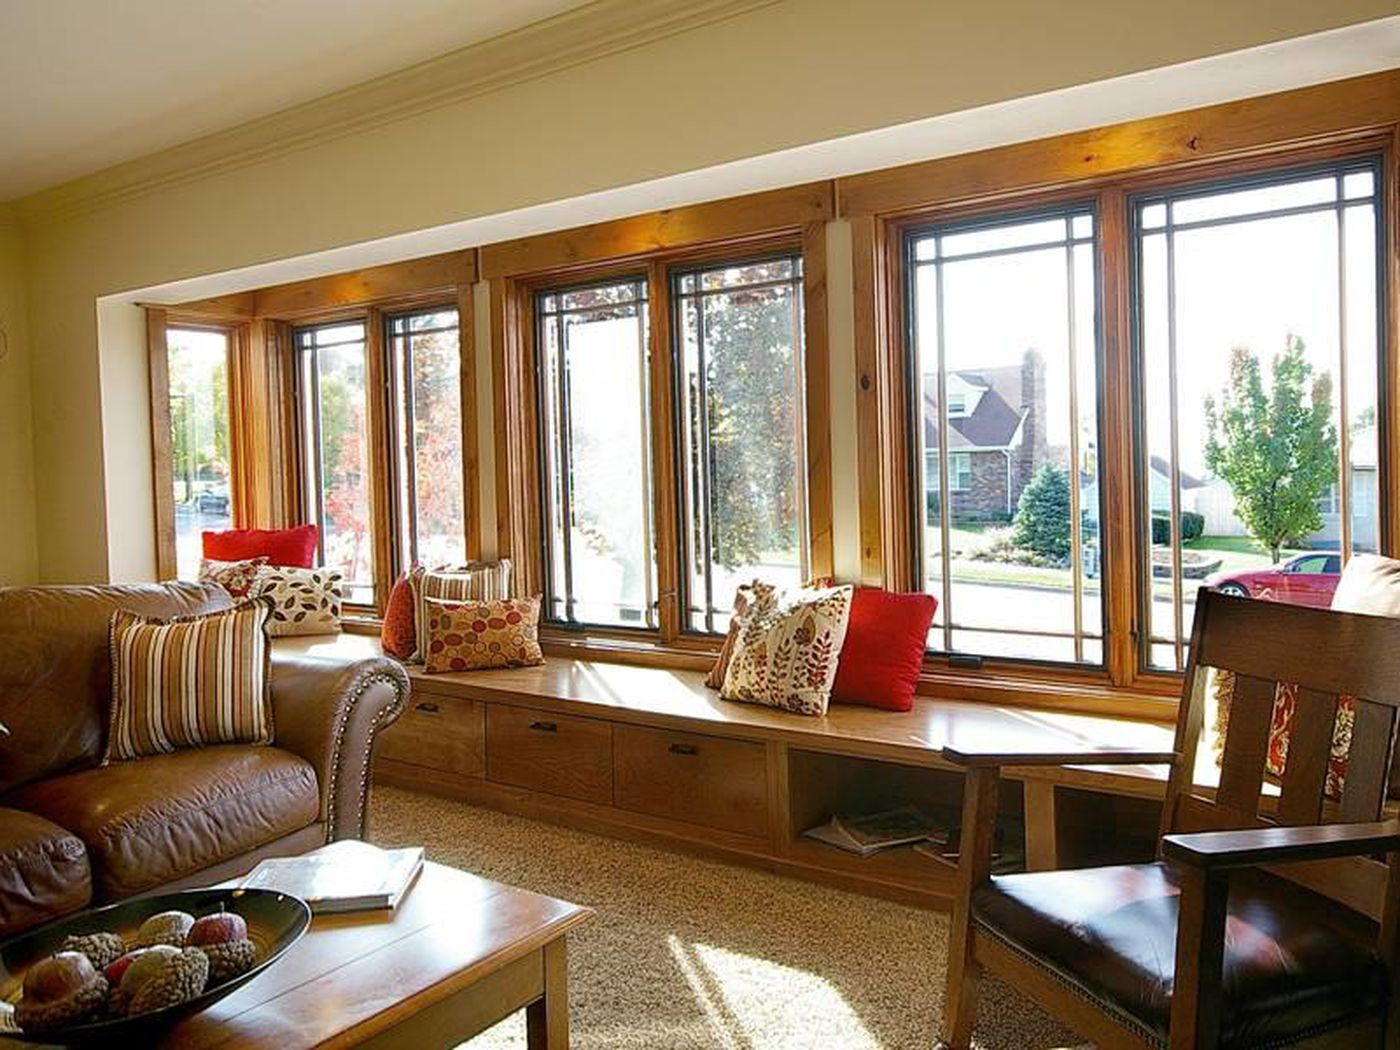 Renovation Solutions Converting Your Garage To Living Space Deseret News